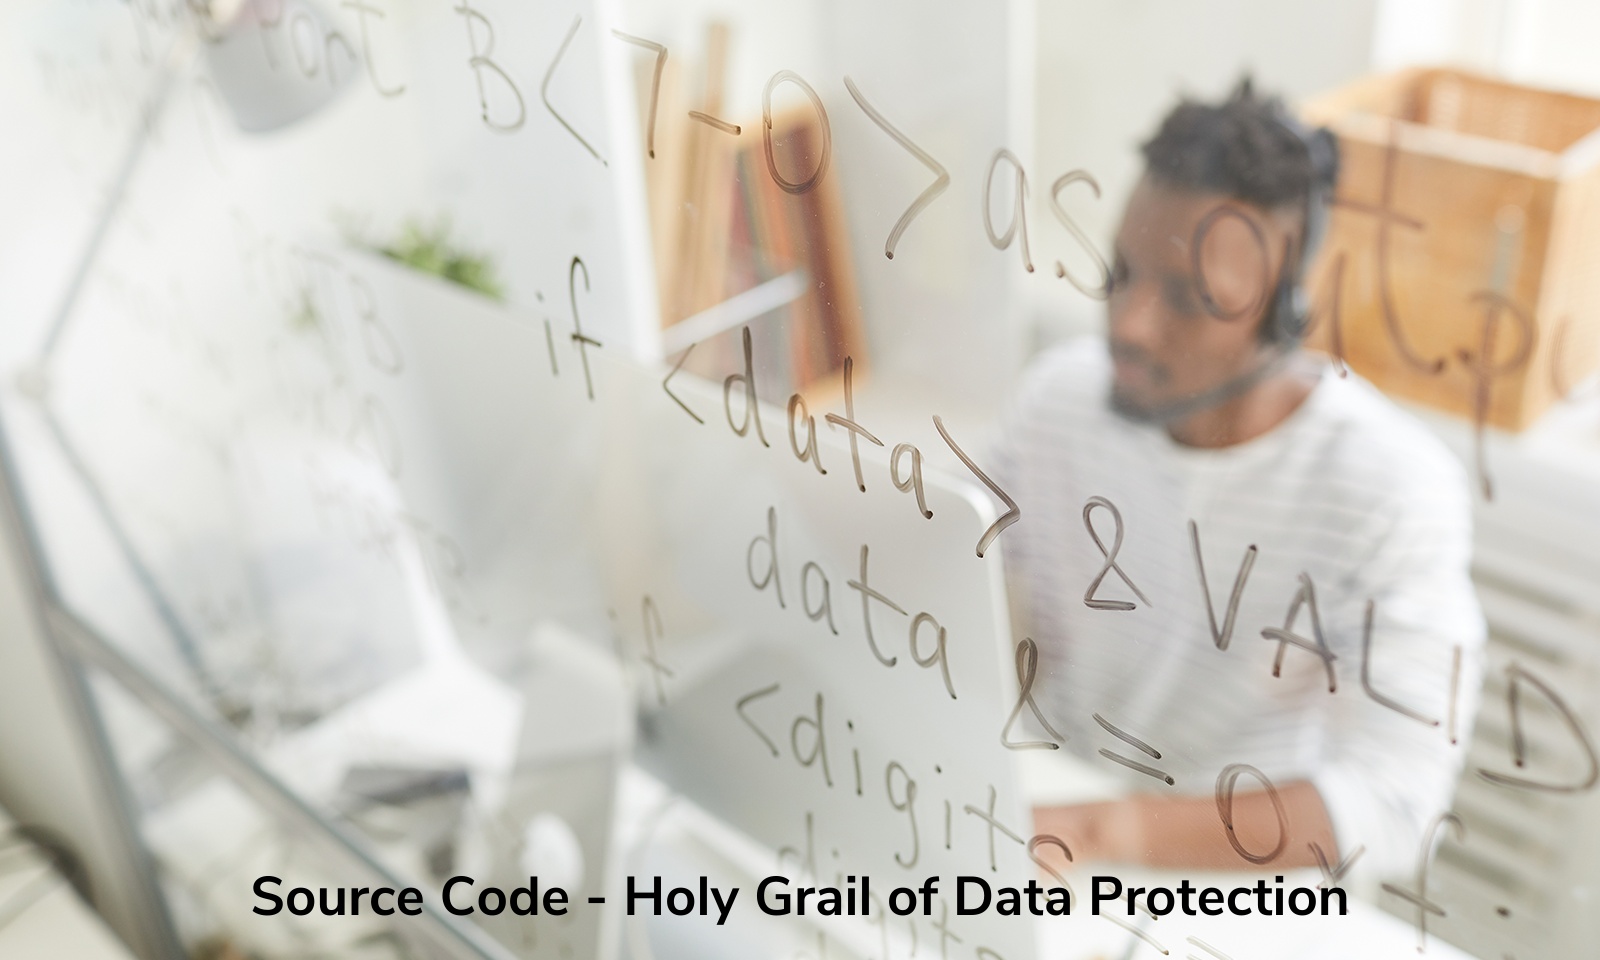 Source Code - Holy Grail of Data Protection